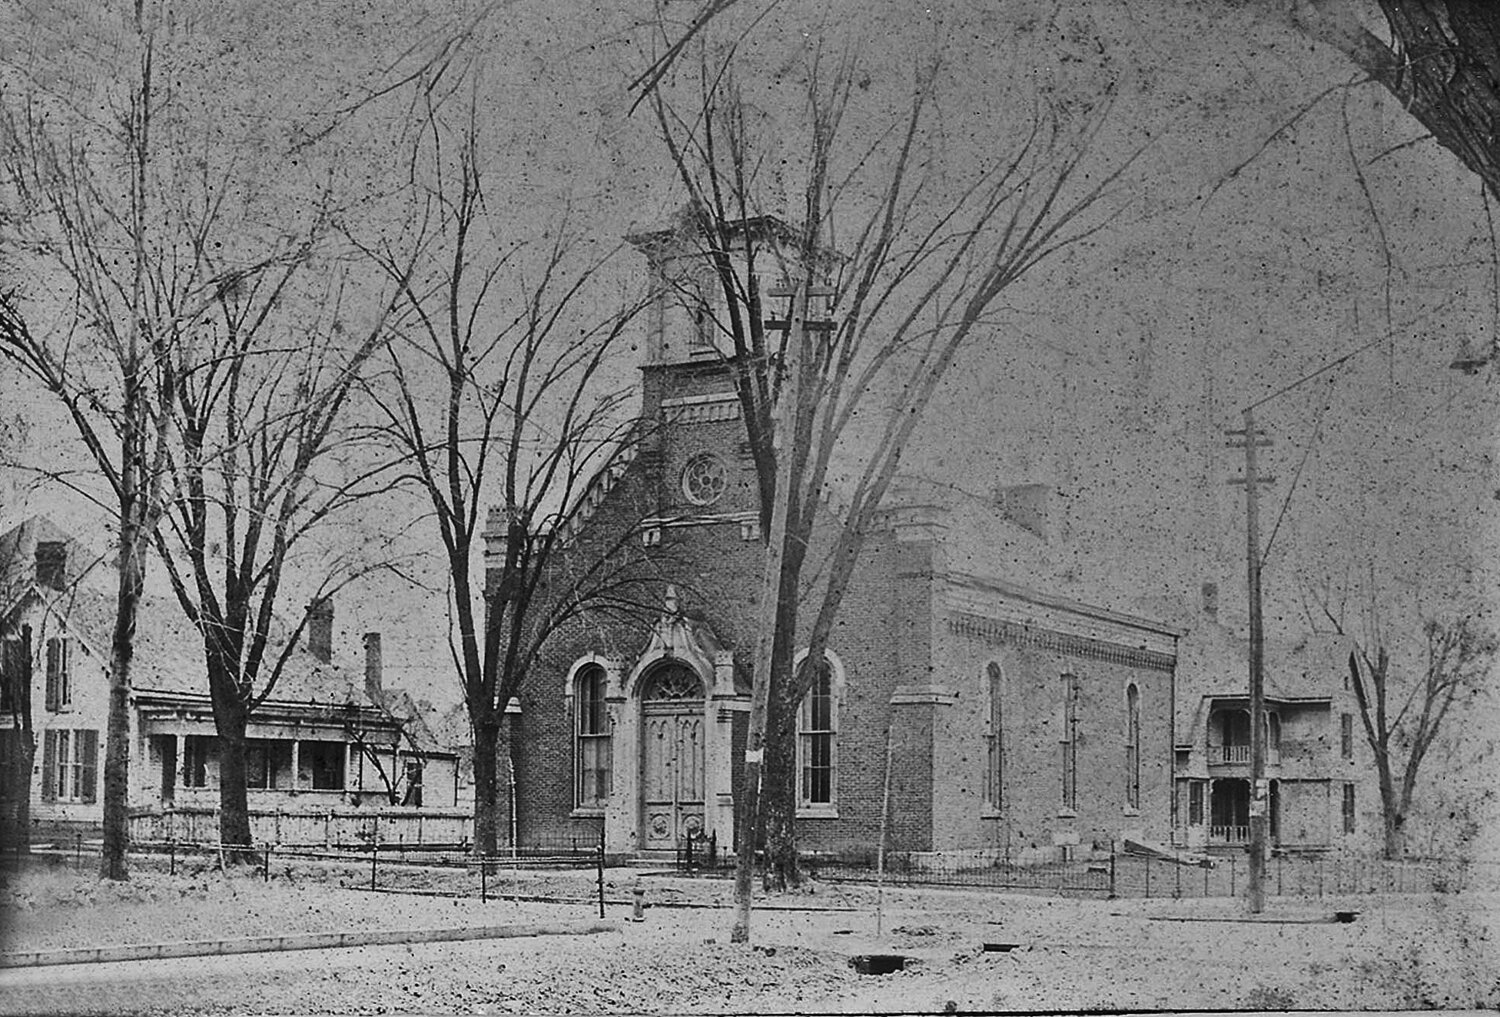 In August, Peggy Julian presented the 200-year history of the First Presbyterian Church in the county. In 1870, local builder, Thomas Stevens, replaced the church's 1840 building with the new brick and stone building shown above. (Courtesy photo Lawrence County Museum)